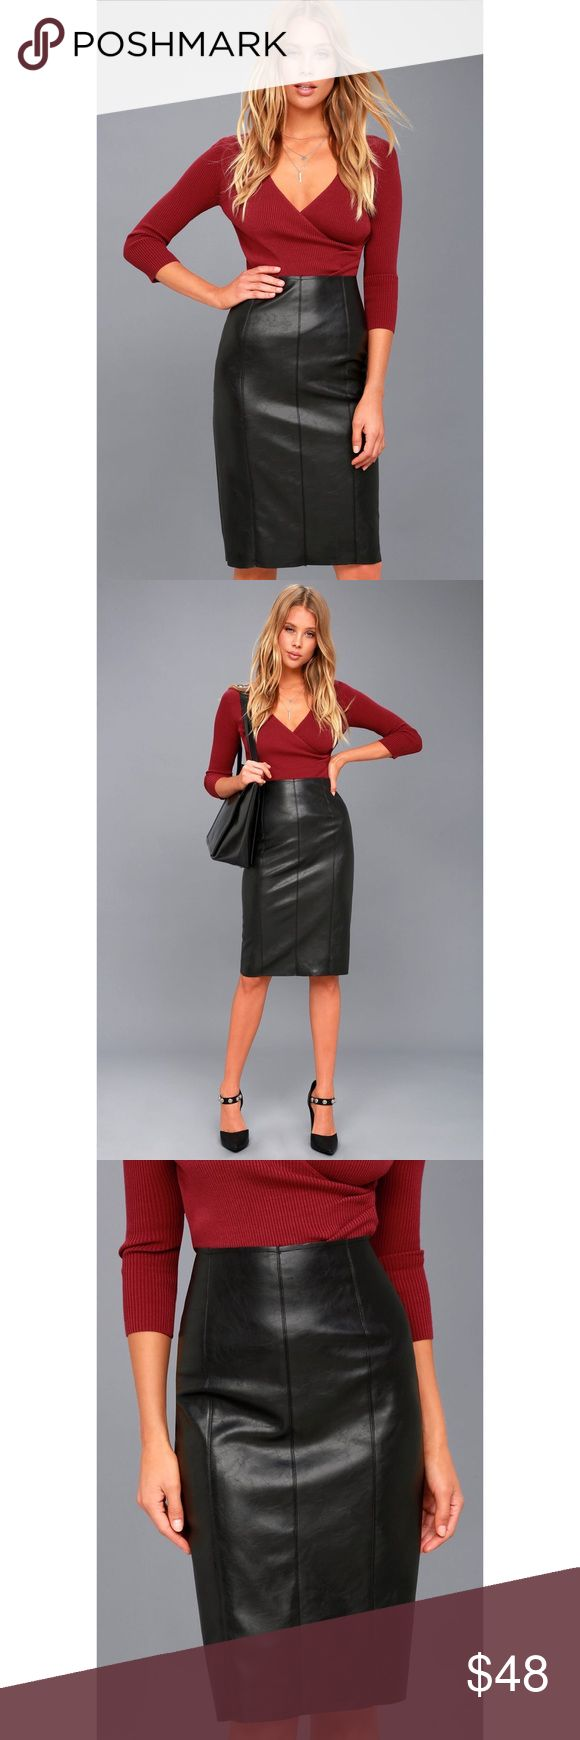 """PENCIL ME IN BLACK VEGAN LEATHER MIDI SKIRT Mark your calendars because the Pencil Me In Black Vegan Leather Midi Skirt is ready to party! Stretchy vegan leather starts at a high waist, then hugs your curves all the way to a midi hem. Seamed detail and a raw hem adds an edgy finish. Exposed gunmetal zipper at back meets with a kick pleat. Unlined. 50% Polyester, 50% PU.  Length: Knee to mid-calf length. Size small measures 25"""" from top to bottom.  Original manufacturer tag attached. Lulu's…"""